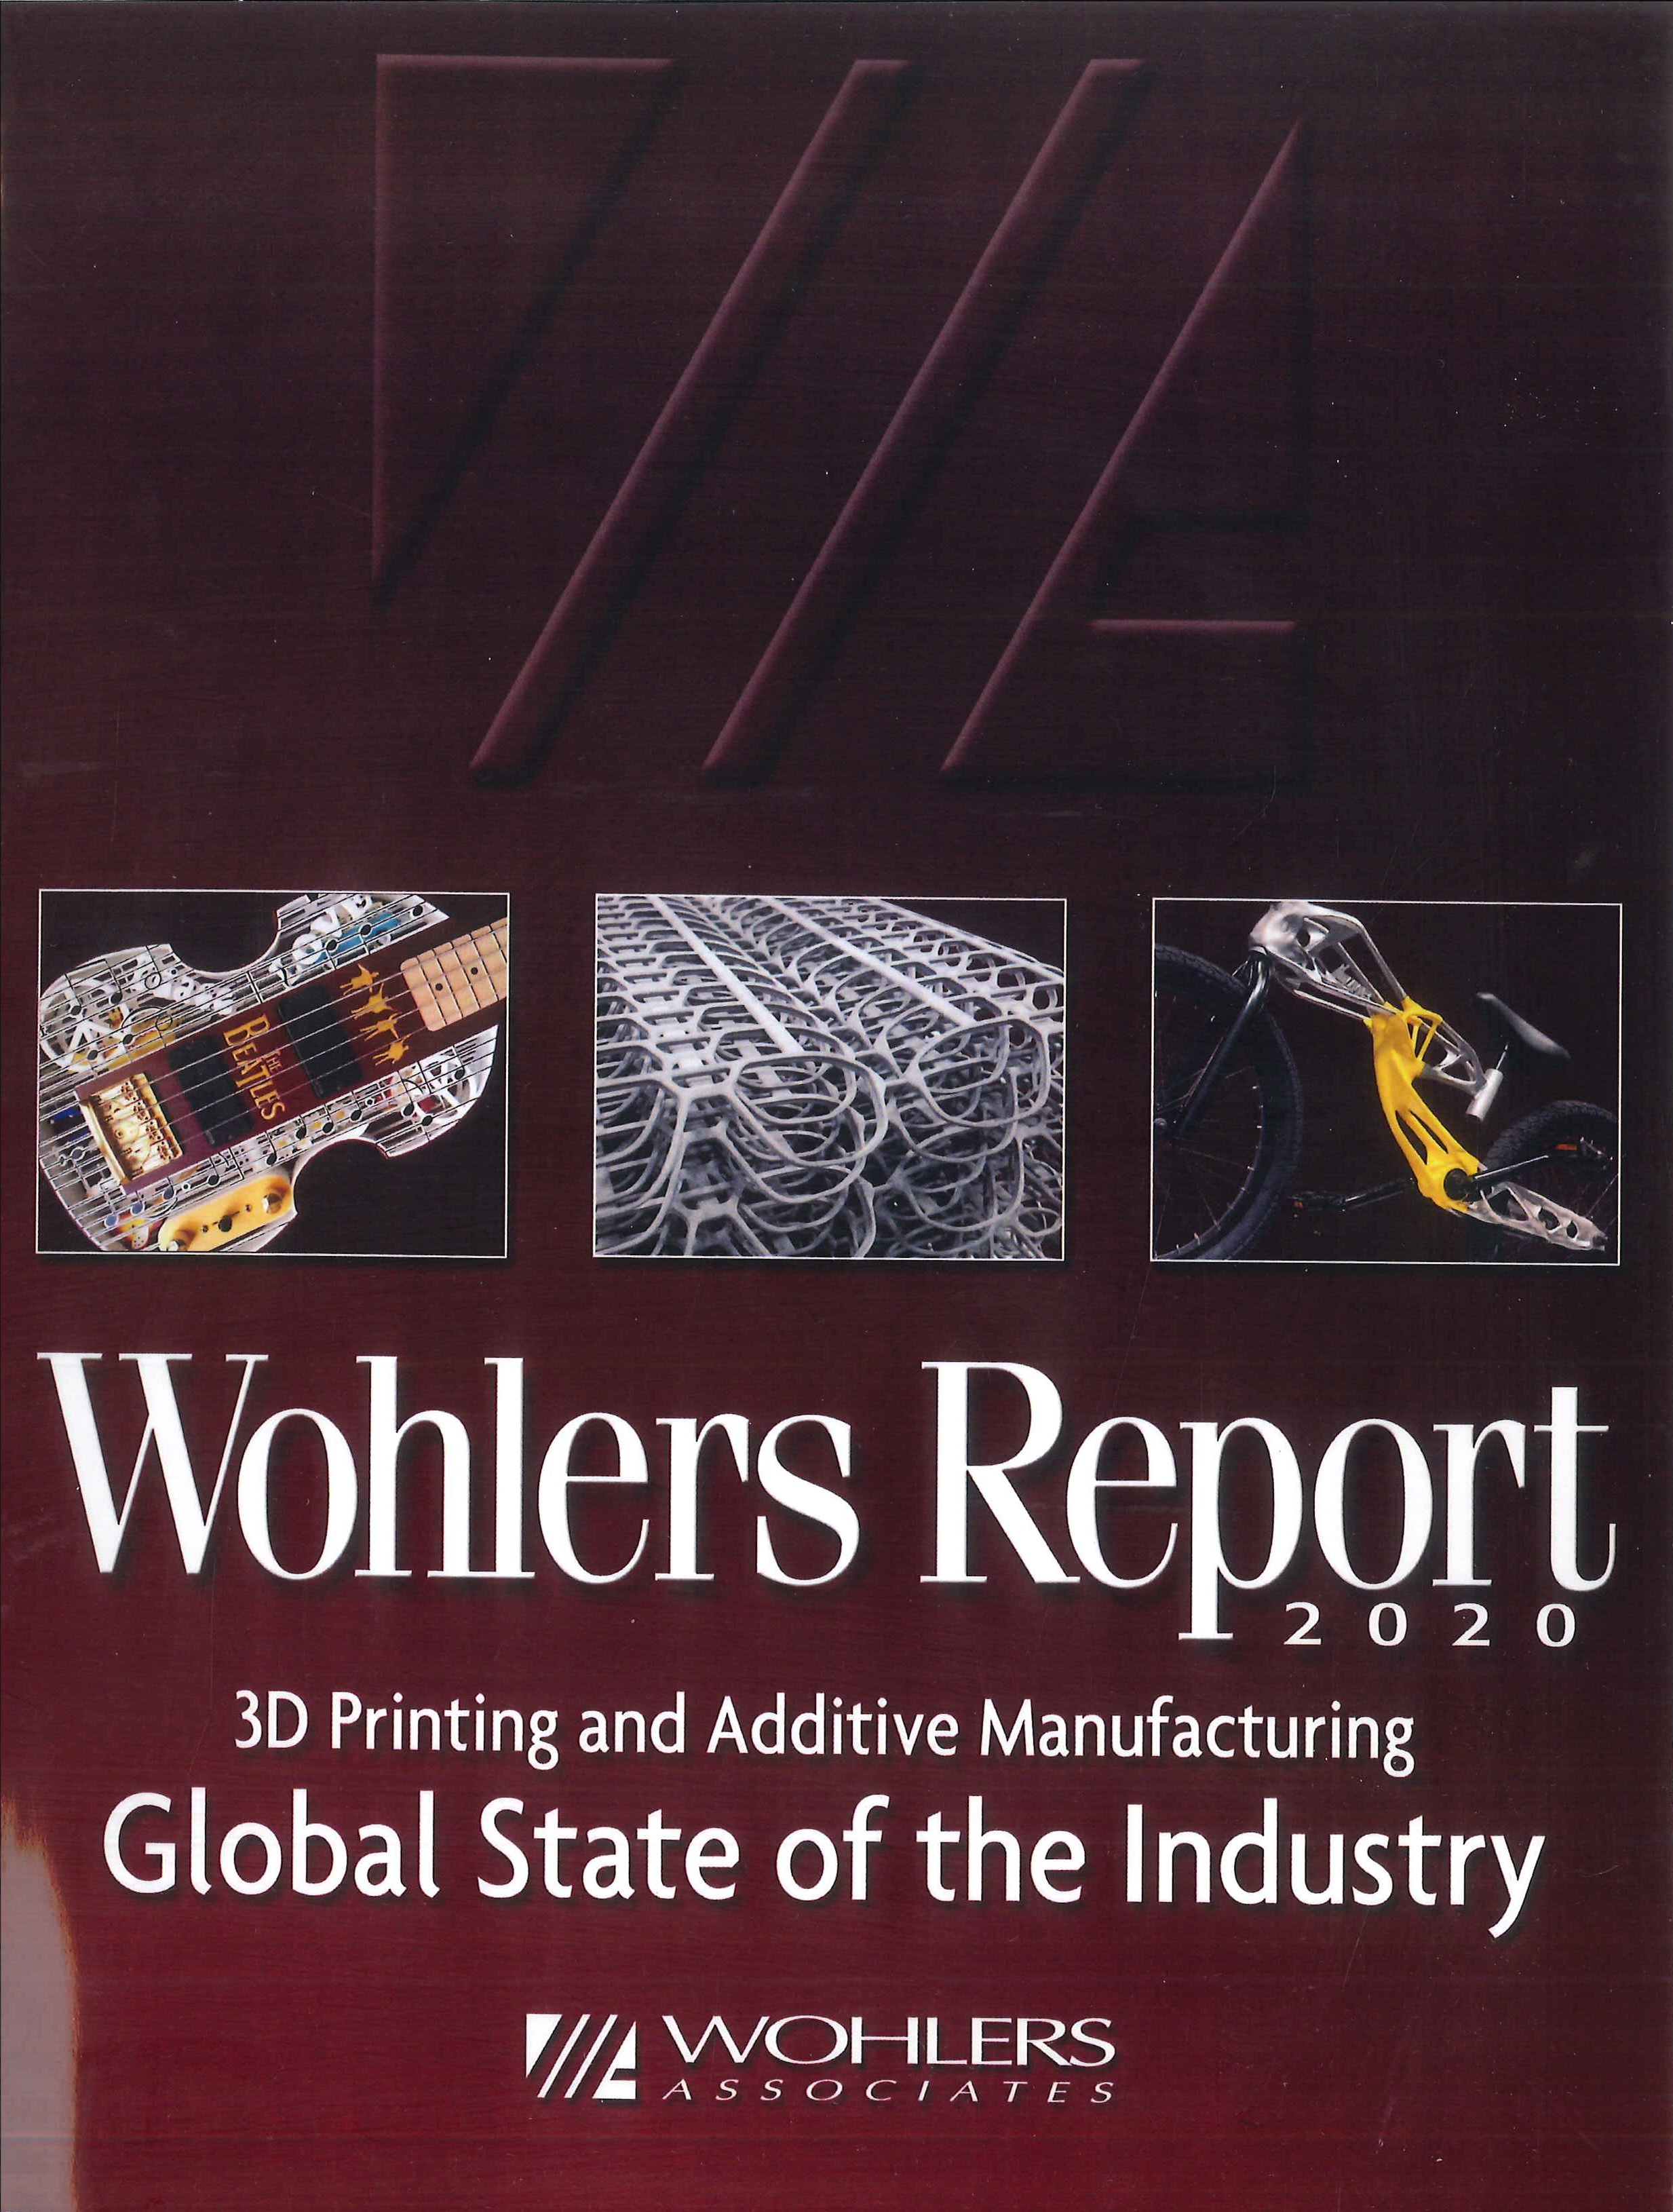 Wohlers report [e-book]:3D printing and additive manufacturing state of the industry:annual worldwide progress report